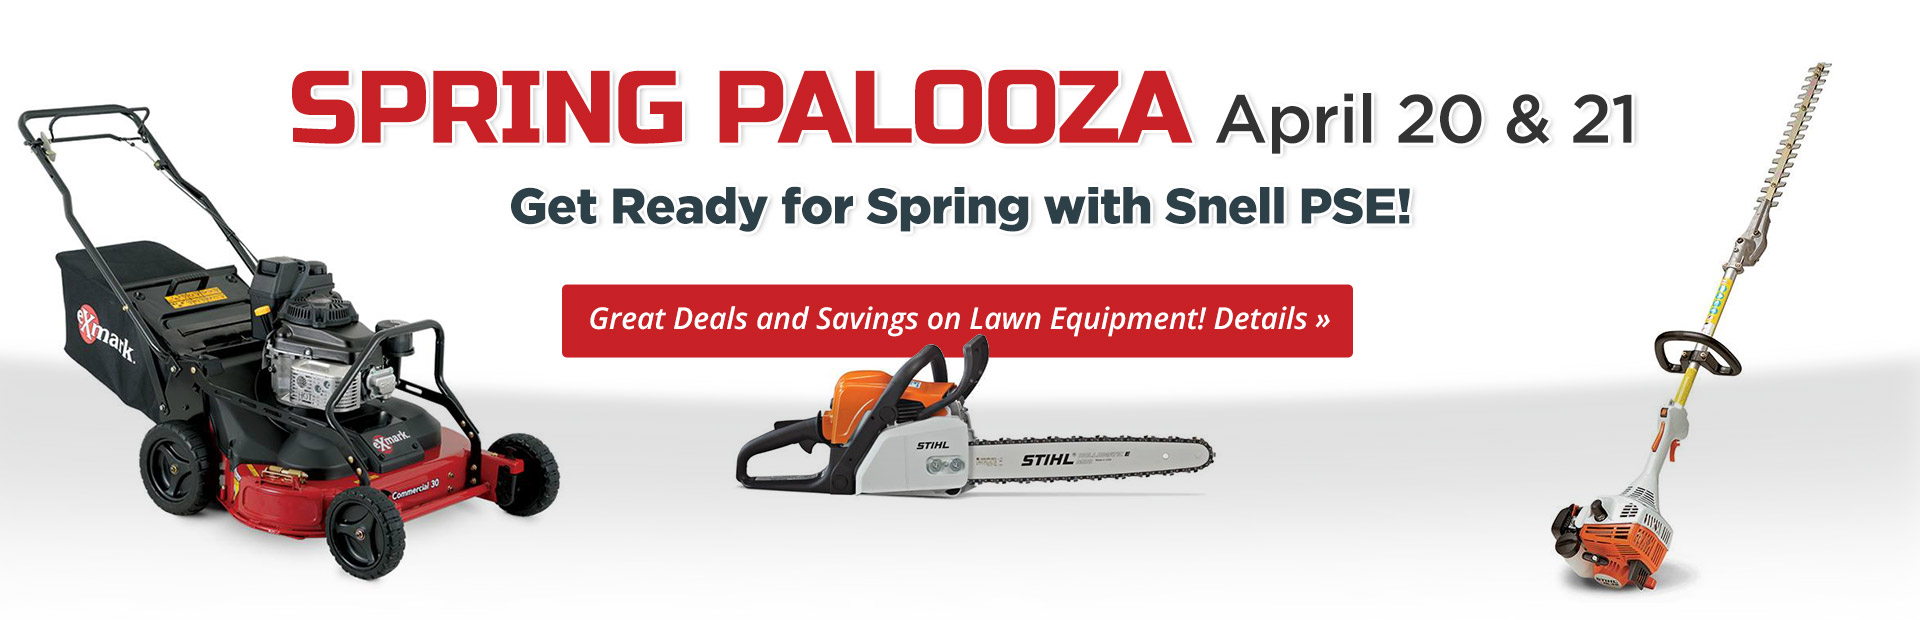 Join us April 20 and 21 for Spring Palooza! Click here for details.